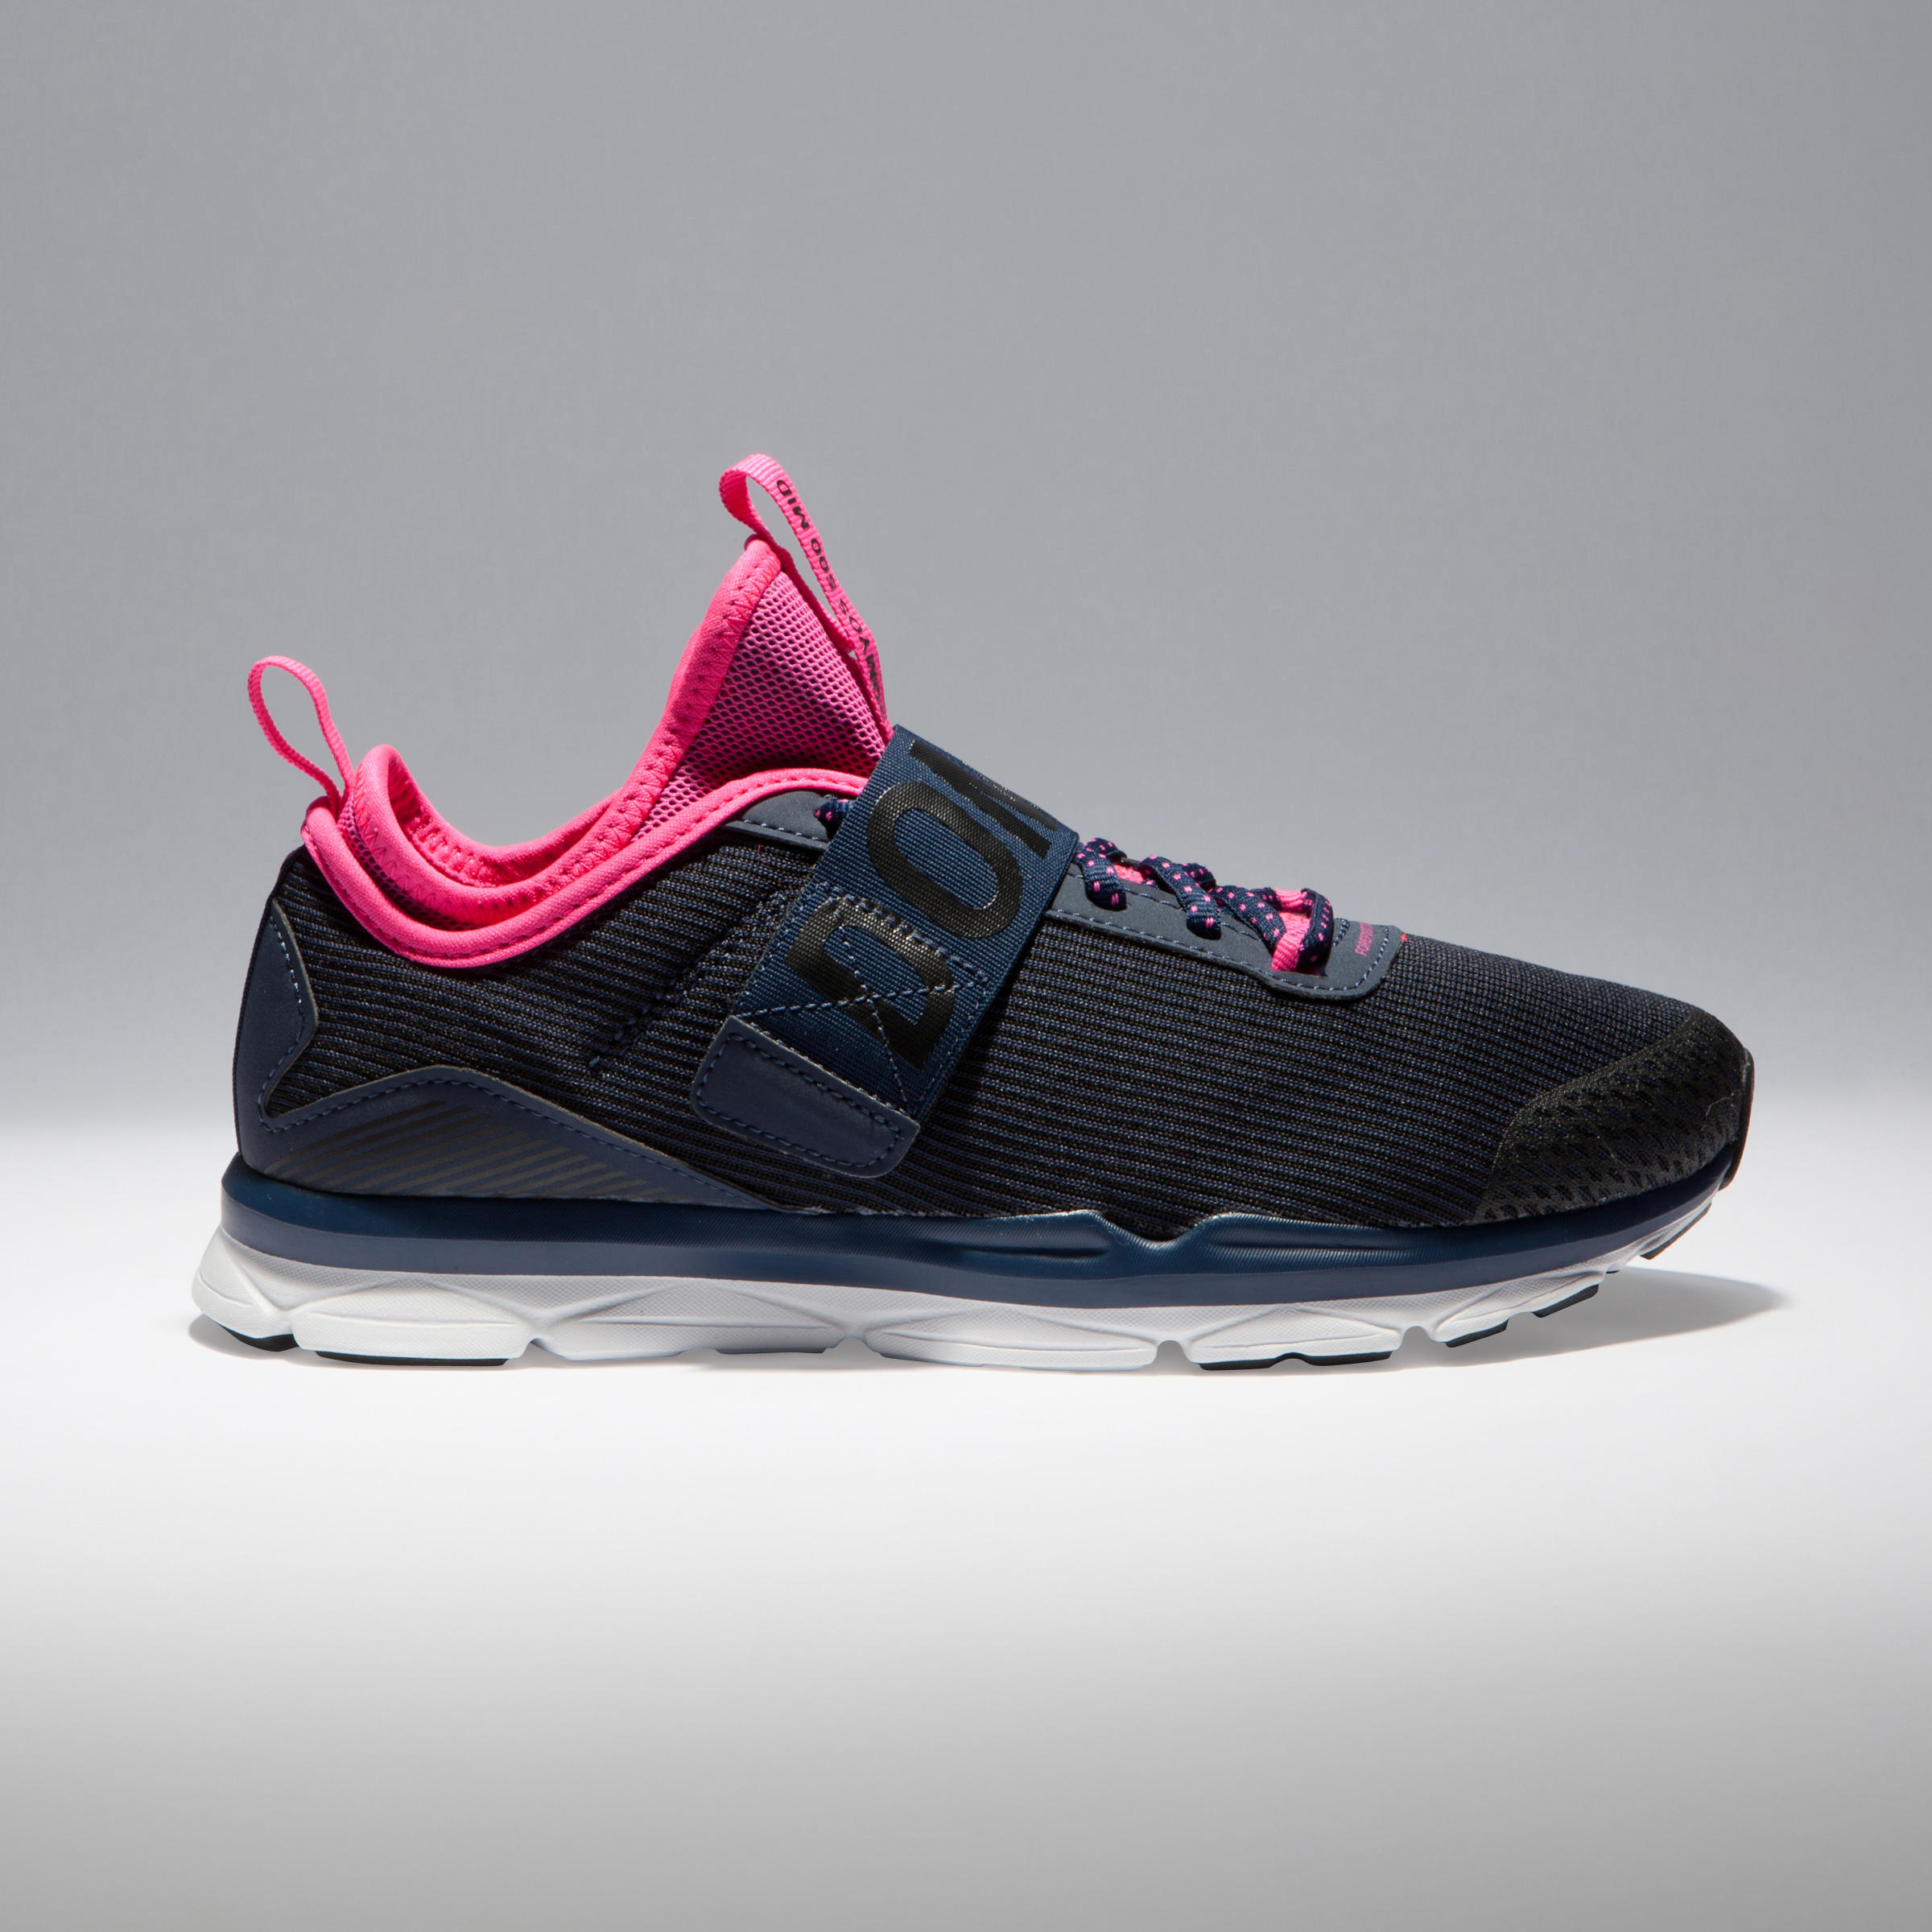 500 Mid Women's Cardio Fitness Shoes - Blue/Pink